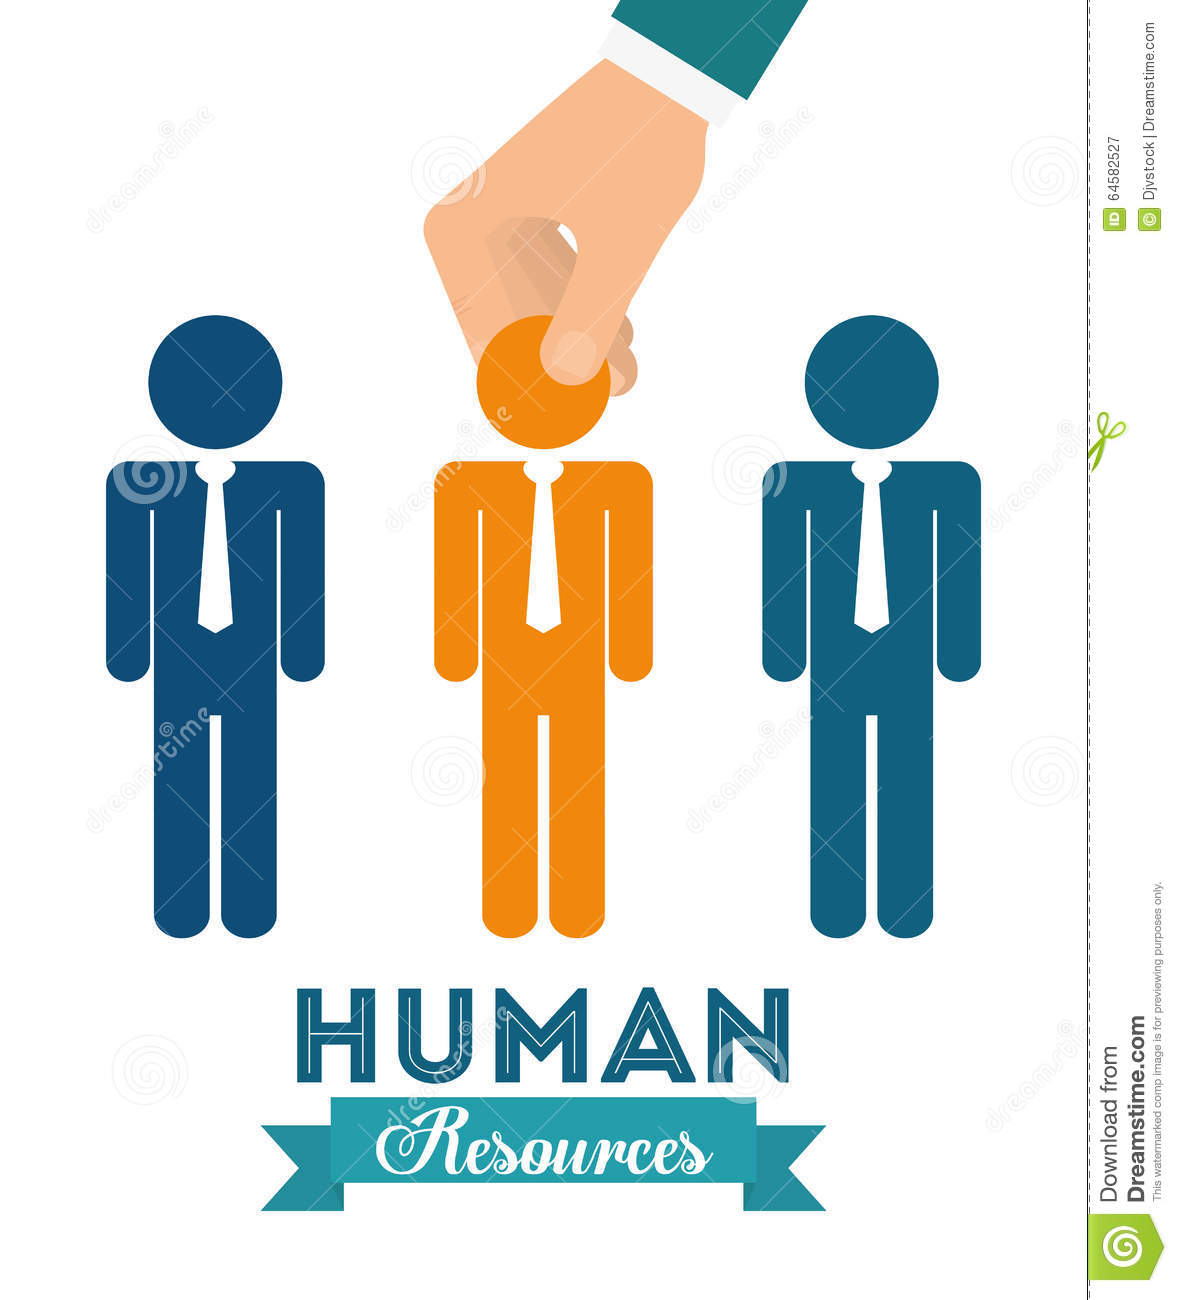 Human Resources: Human Resources Design Stock Vector. Illustration Of